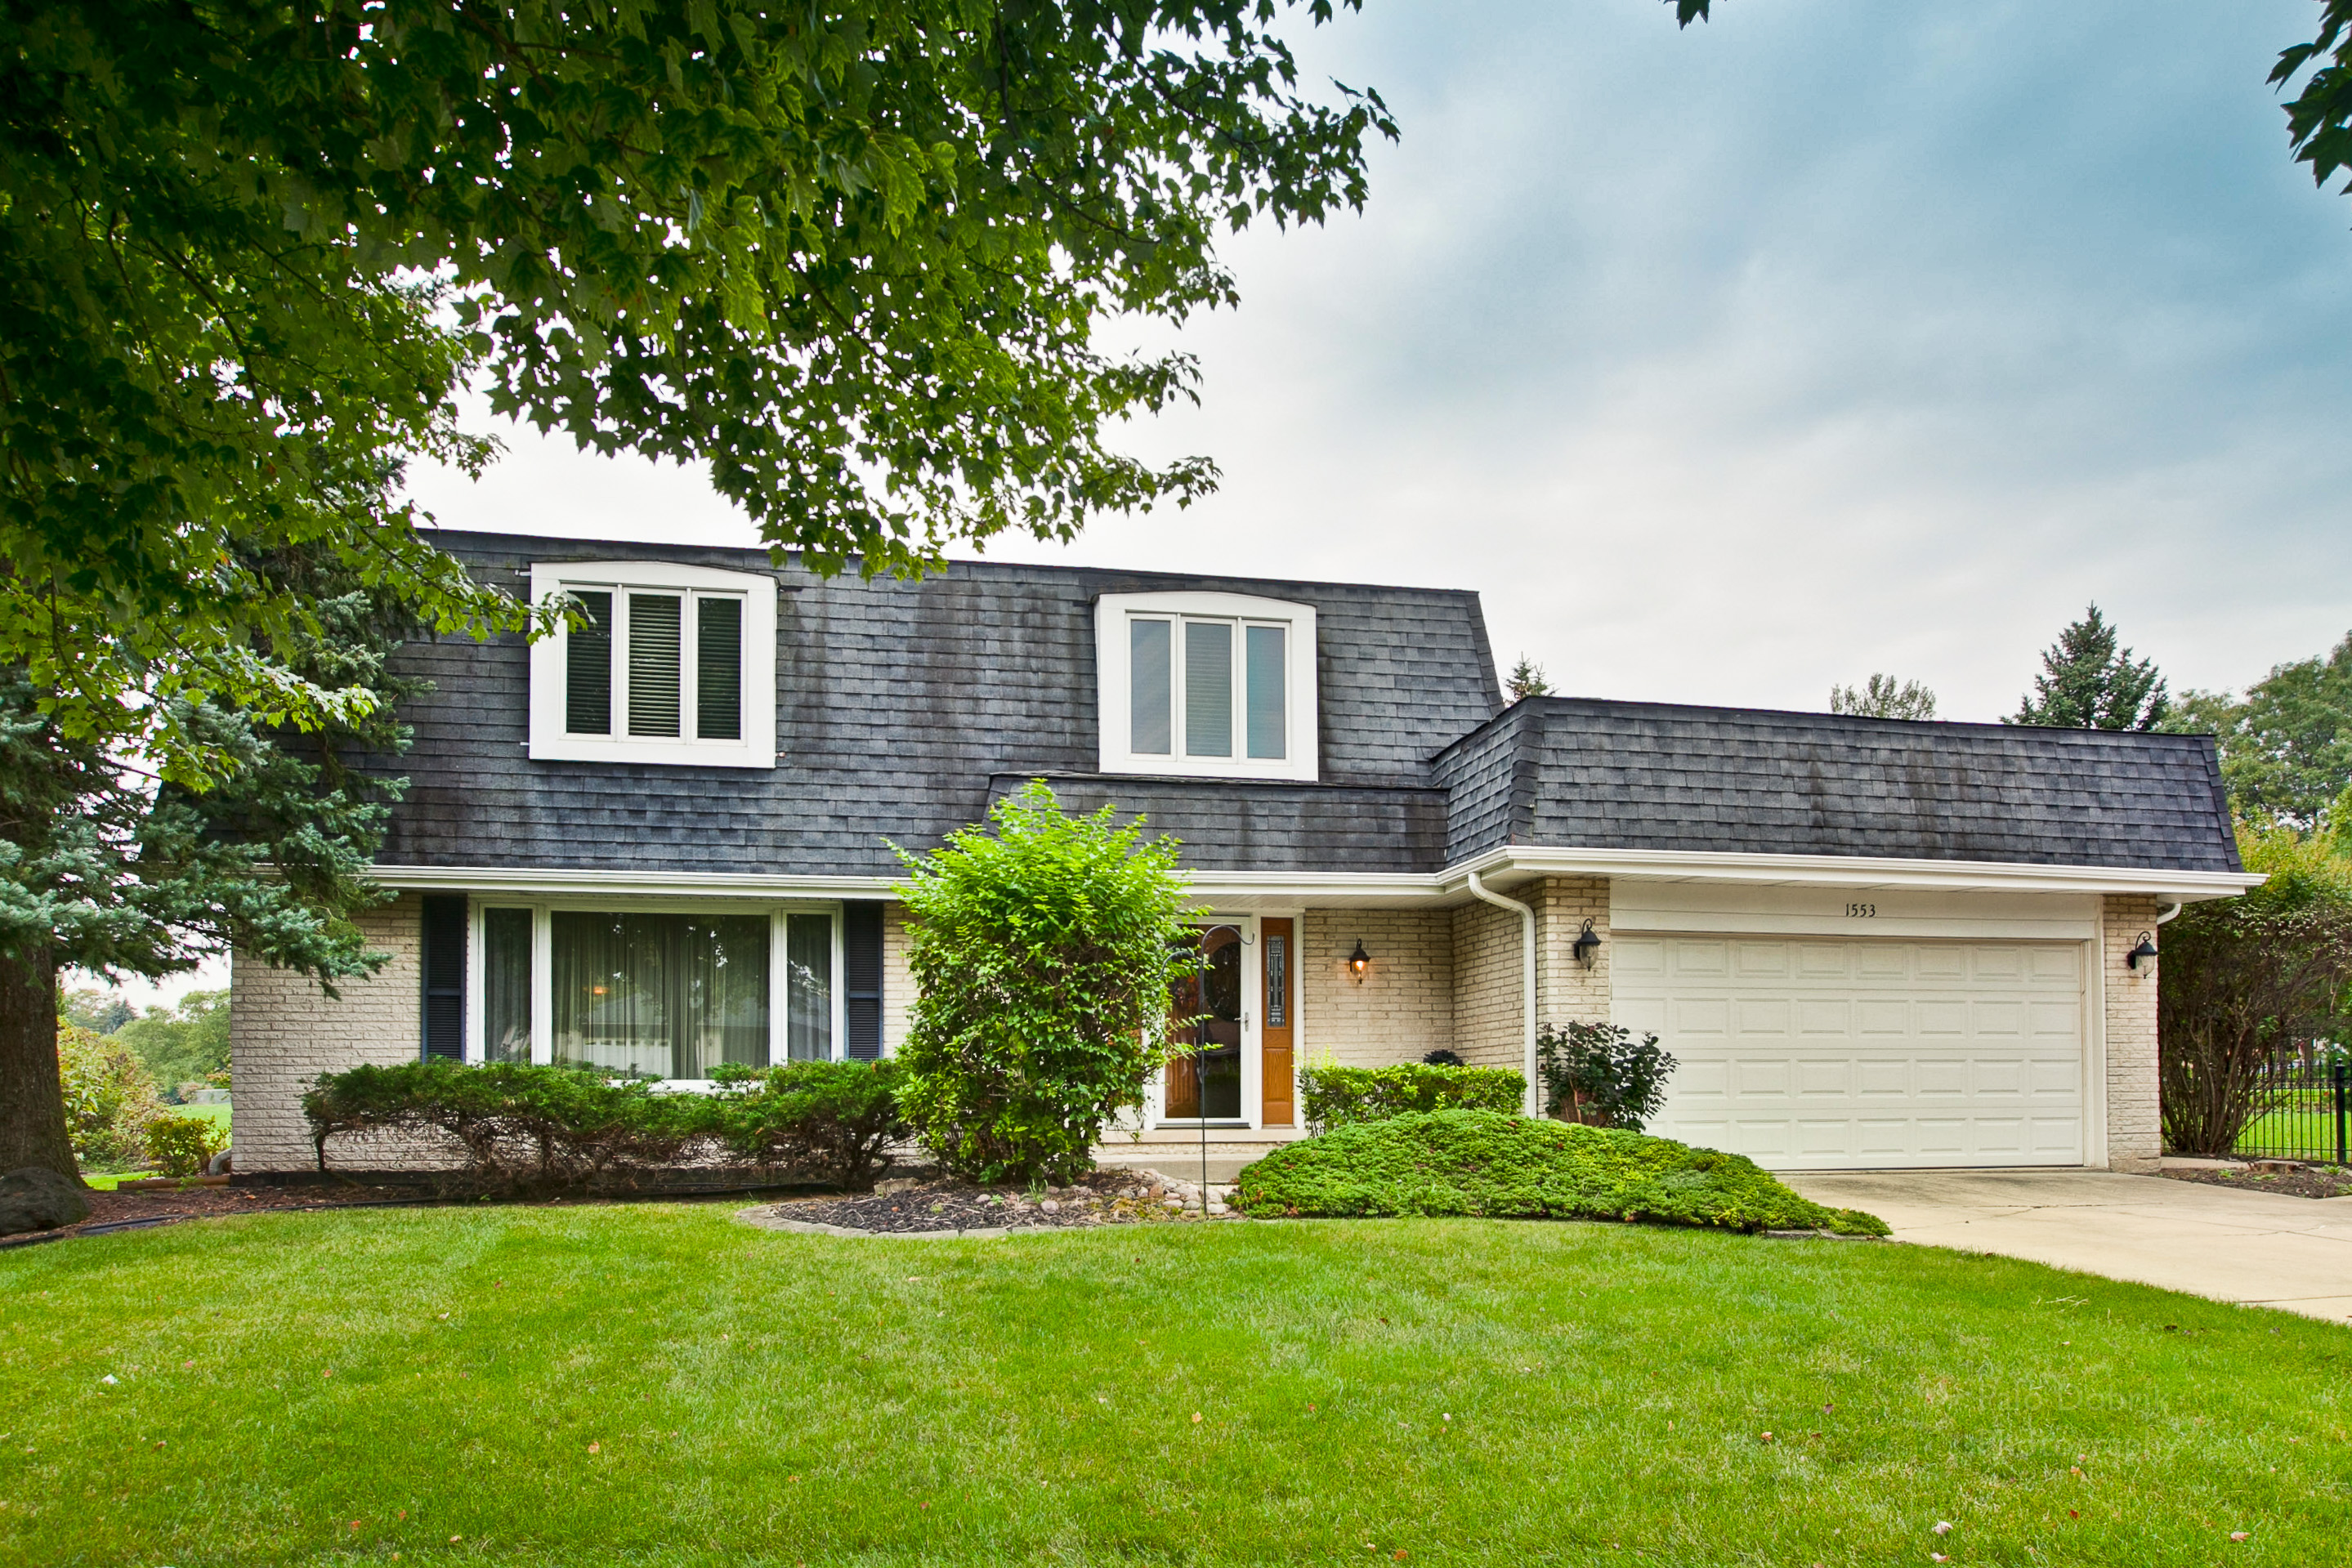 1553 71st Terrace, Downers Grove, Illinois 60516